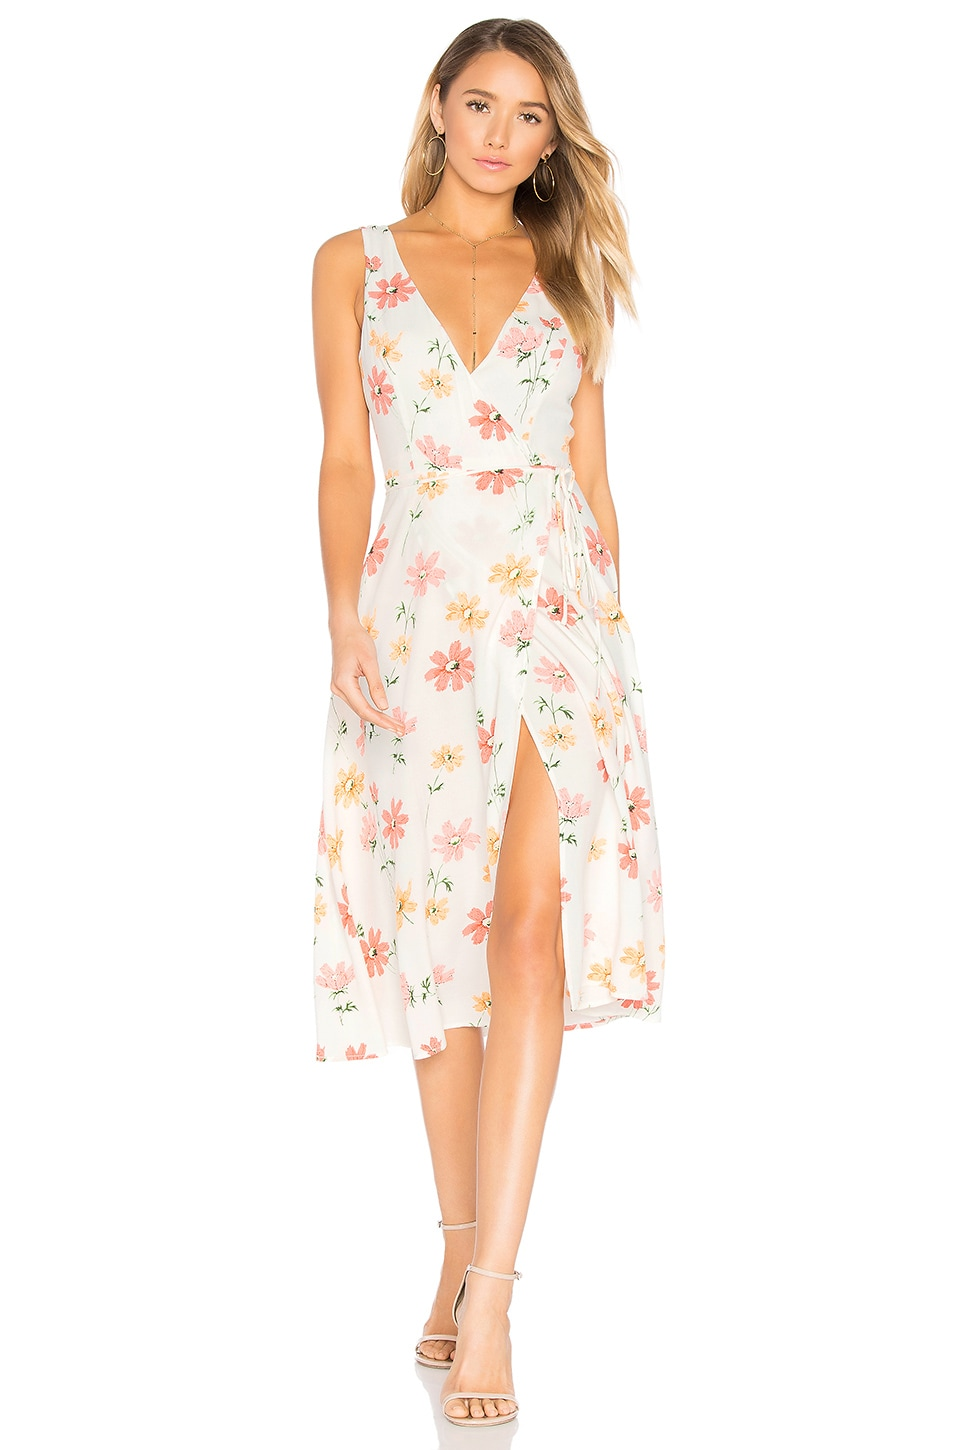 Privacy Please Wilson Dress in Creme